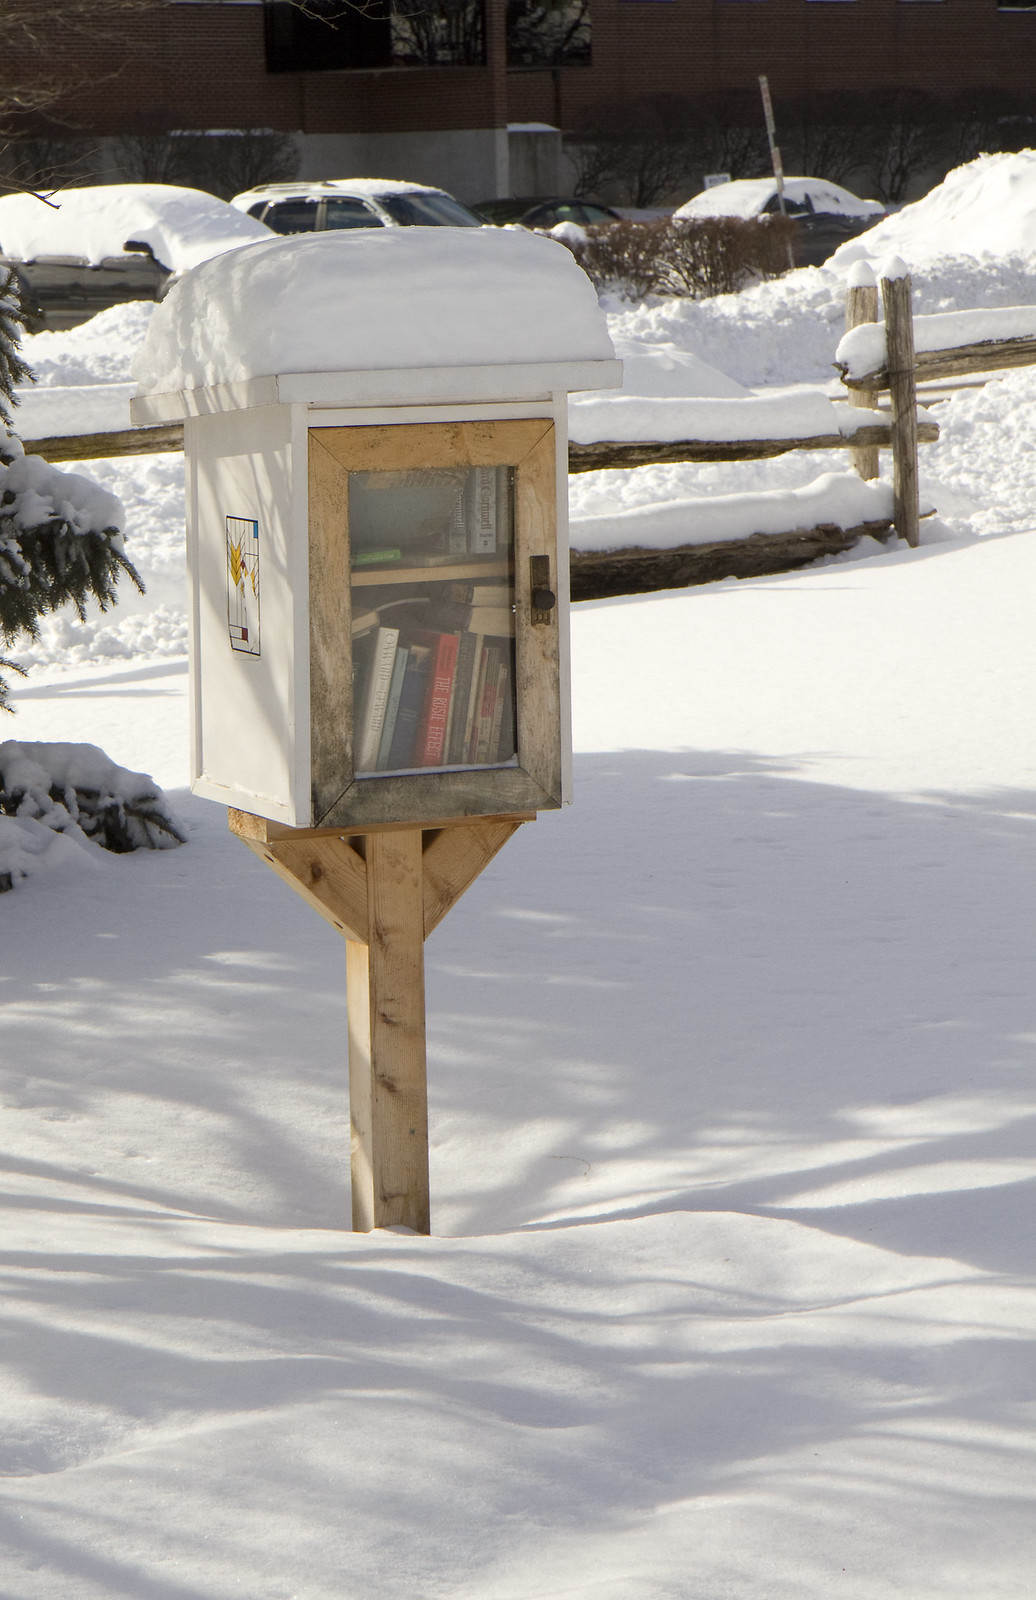 snow covered little library